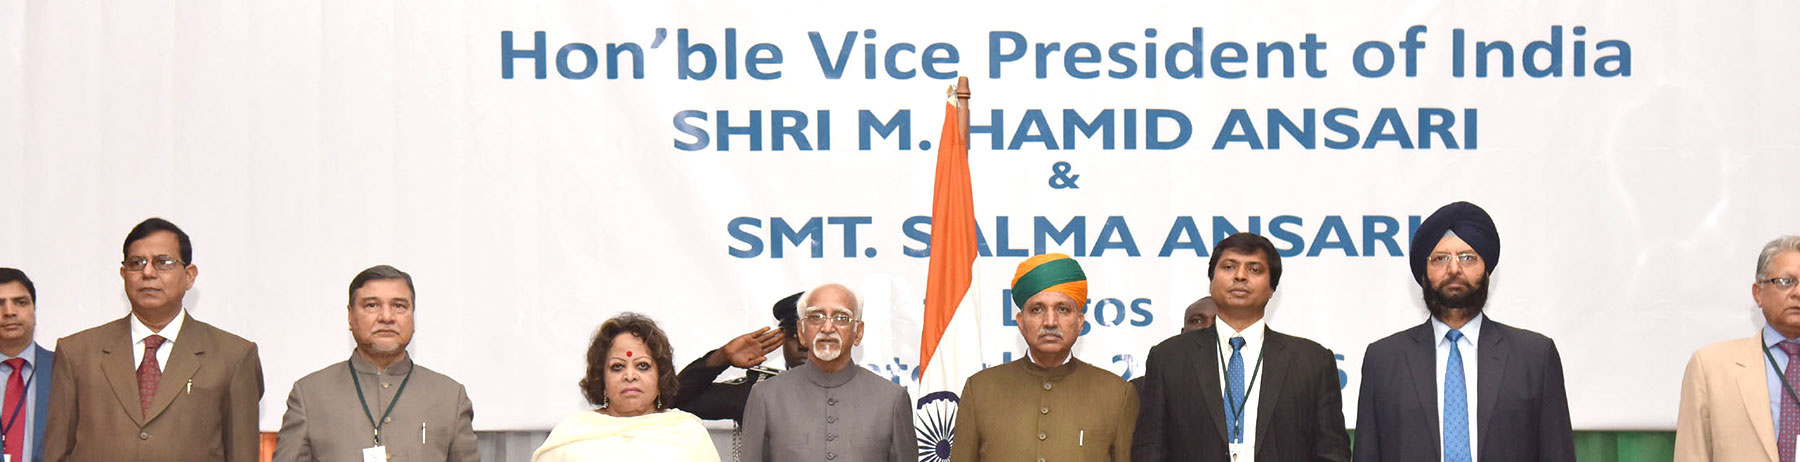 The Vice President, Shri M. Hamid Ansari and Smt. Salma Ansari in a function organised to meet Indian Community, in Lagos, Nigeria on September 28, 2016. The Minister of State for Finance and Corporate Affairs, Shri Arjun Ram Meghwal is also seen